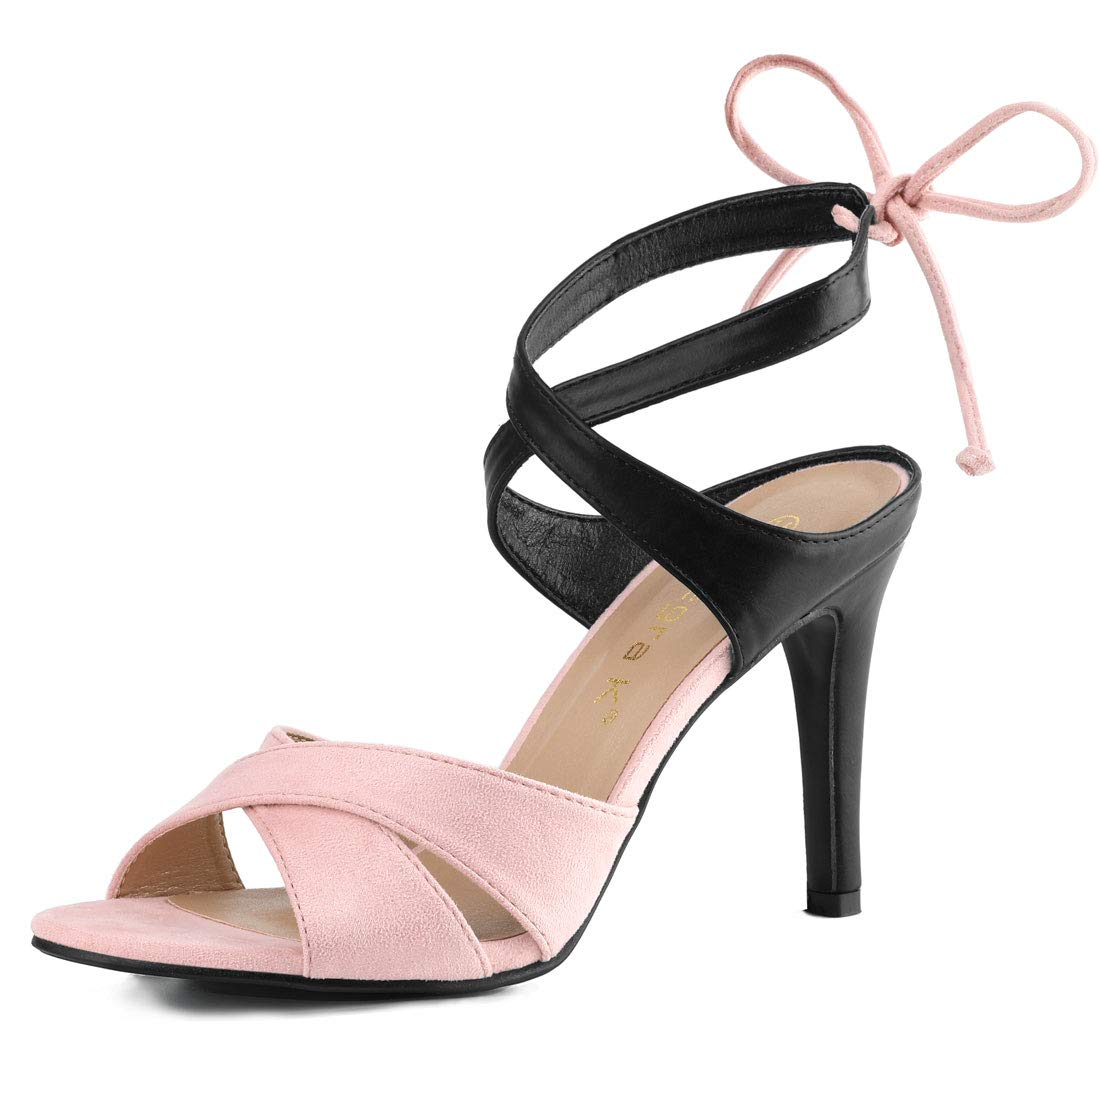 2c0b1bfd1 Allegra K Women's Crisscross Strap Ankle Tie Stiletto Heel Light Pink  Sandals - 9 M US